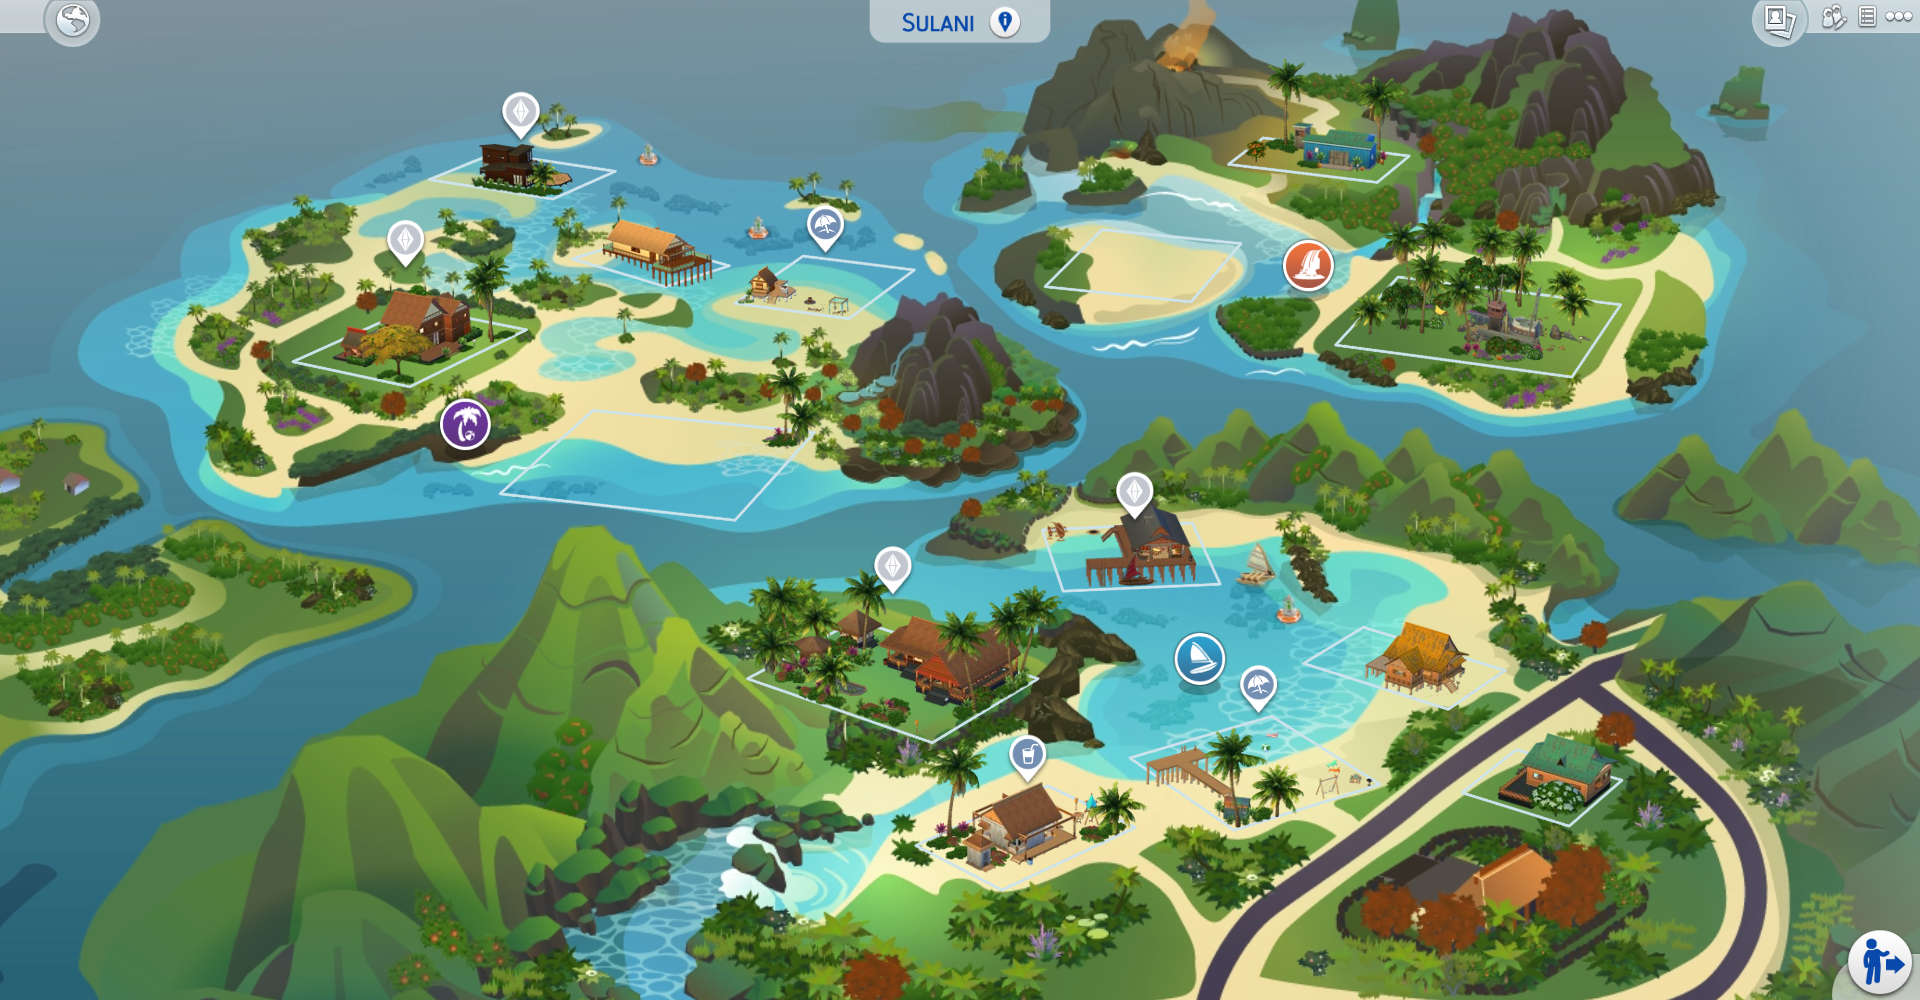 Sulani | The Sims Wiki | FANDOM powered by Wikia